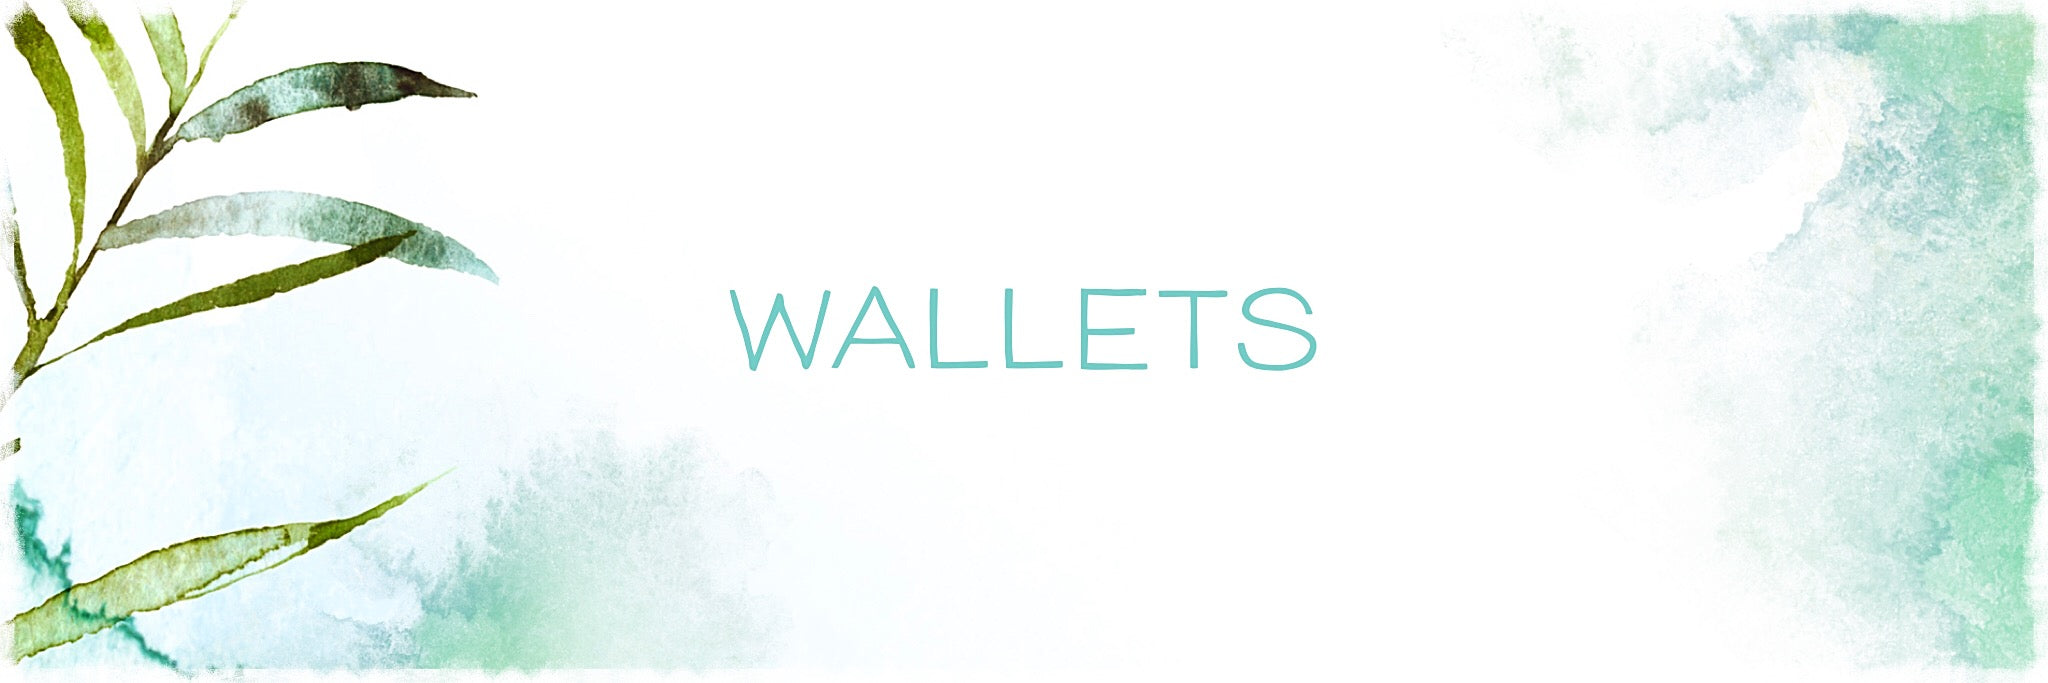 Wallets-Soul Of The Rose www.souloftherose.com